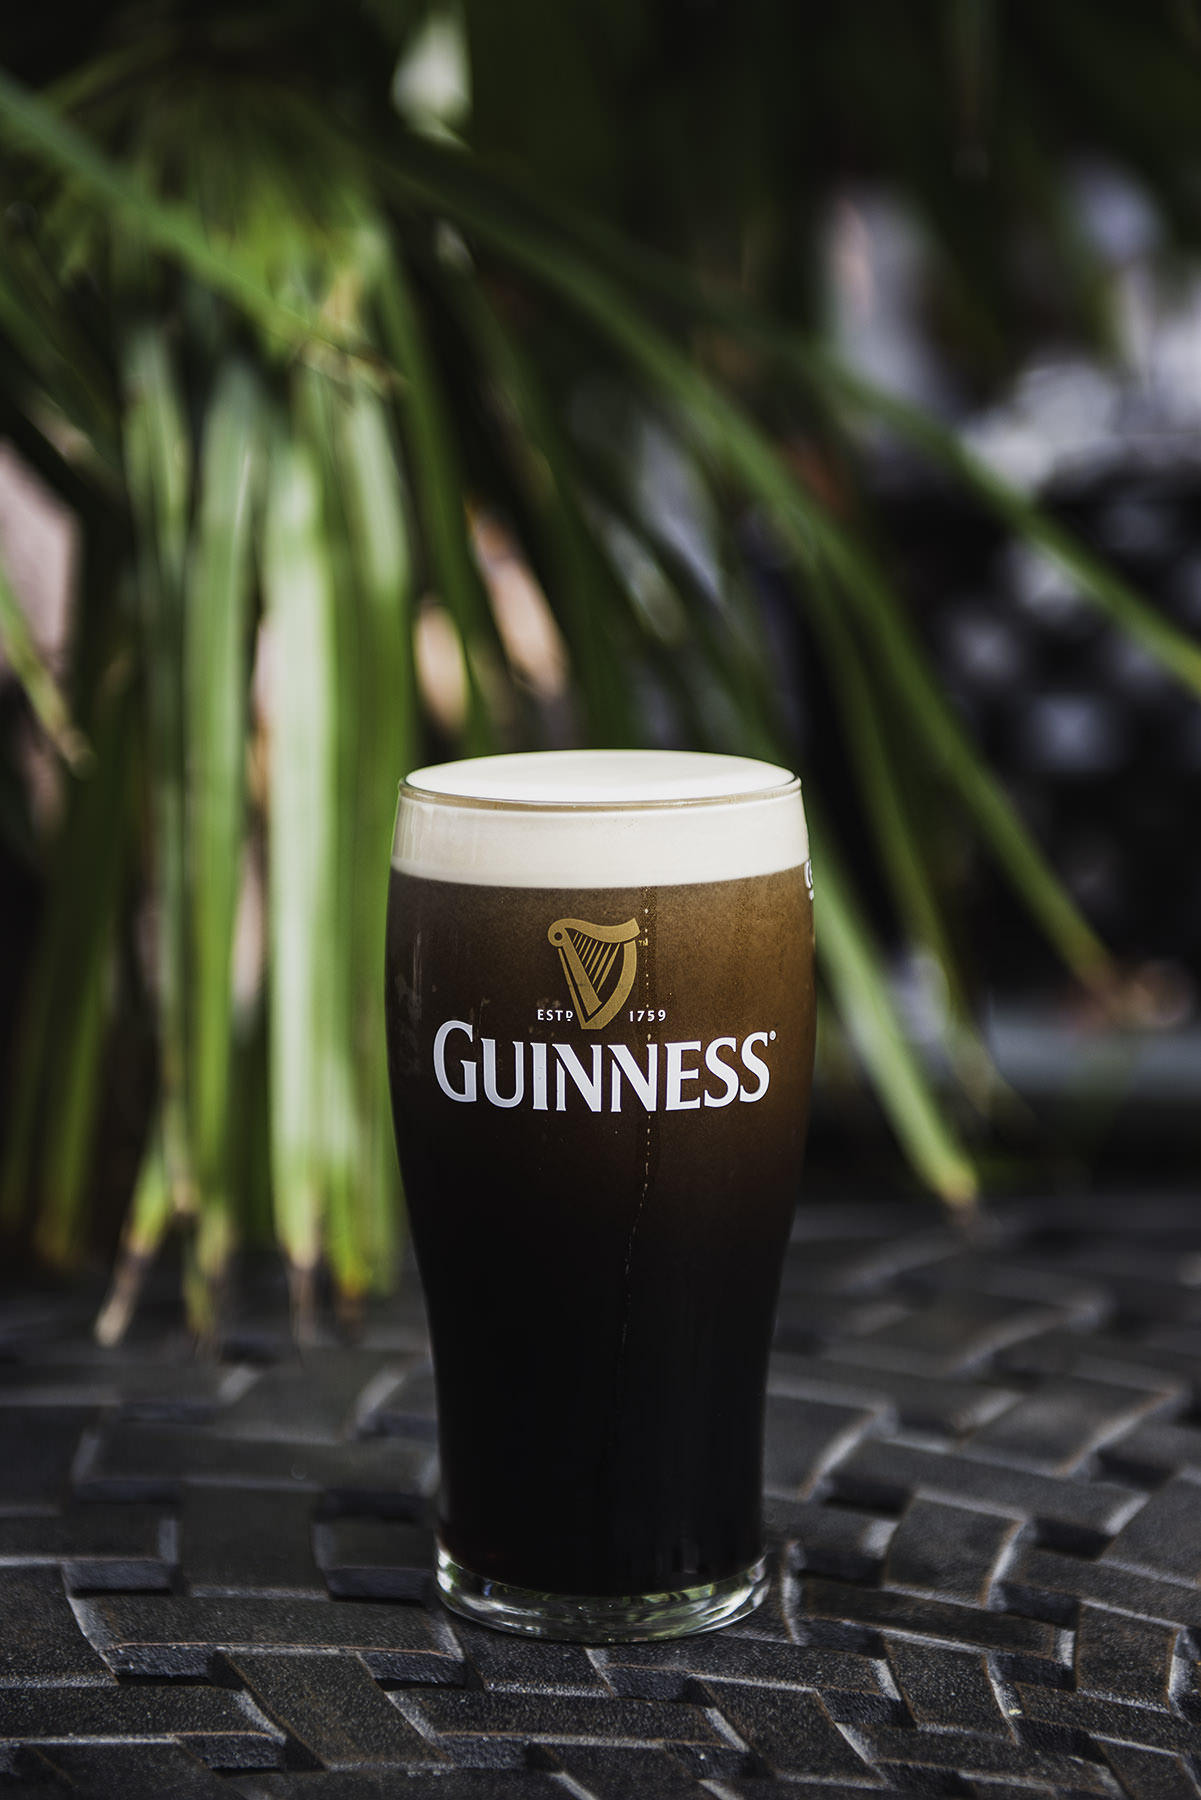 14-travel-ireland-dublin-guinness-beer.jpg